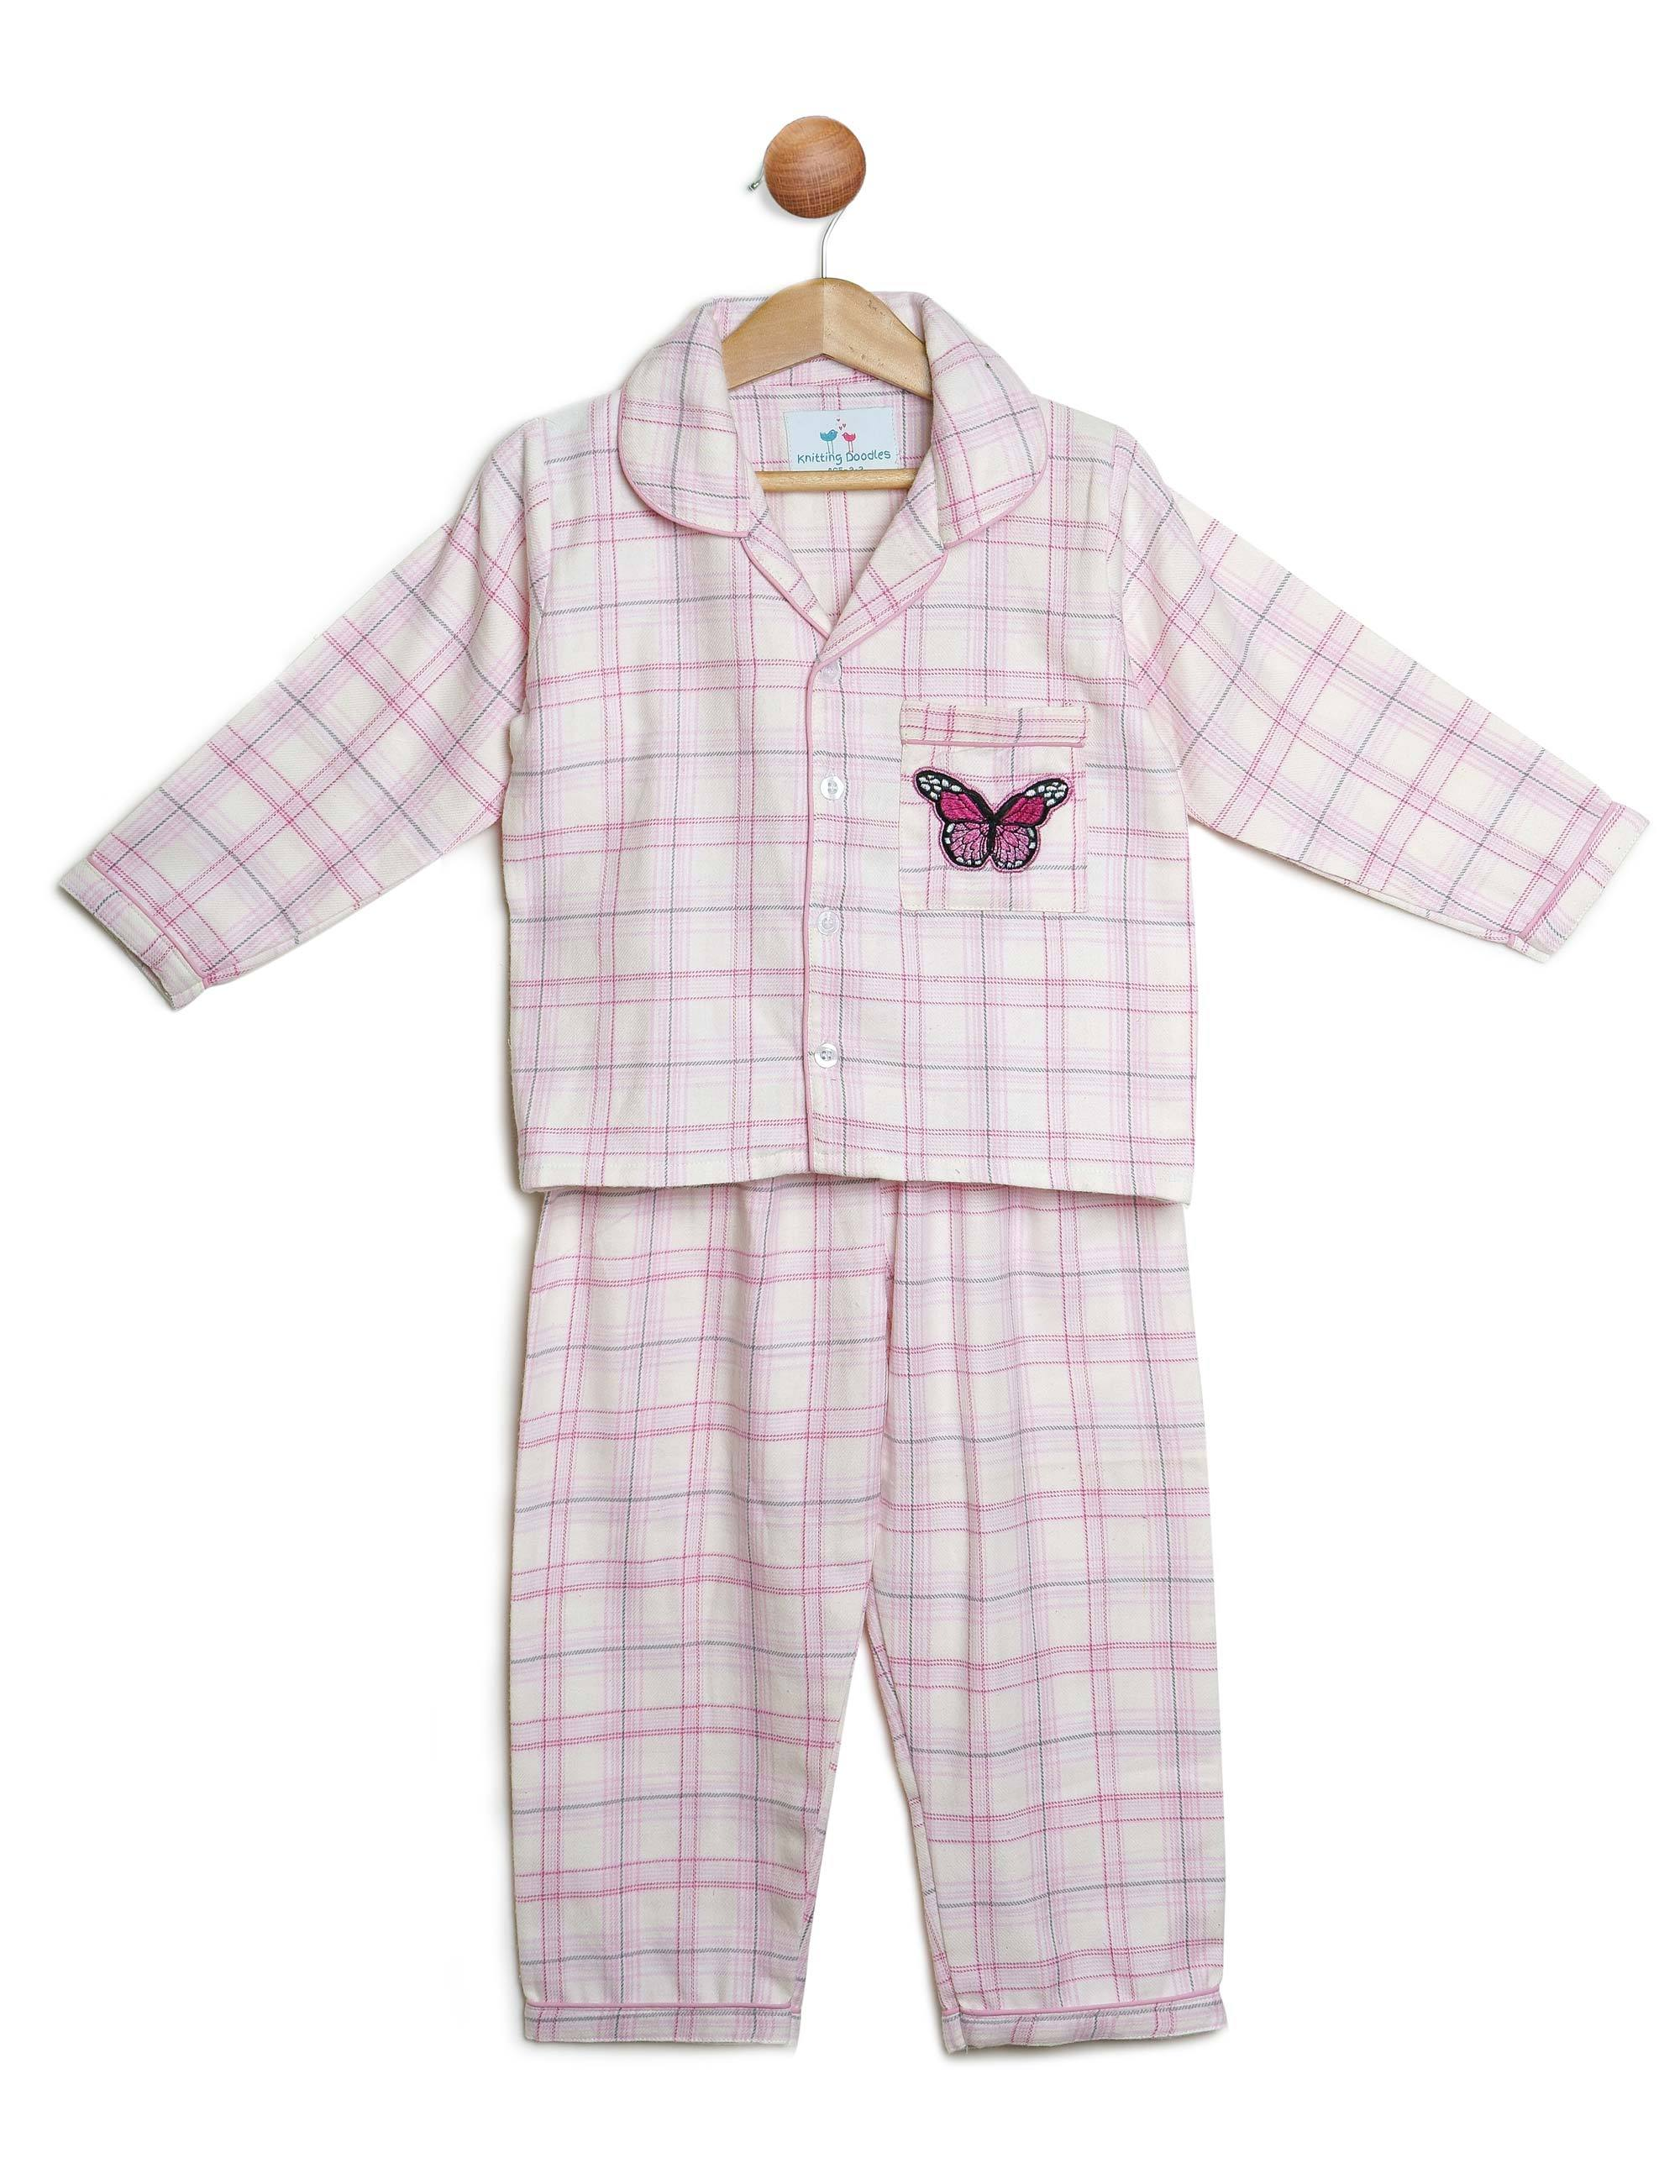 Pink and White Checks Night Suit with Butterfly Patch for Girls